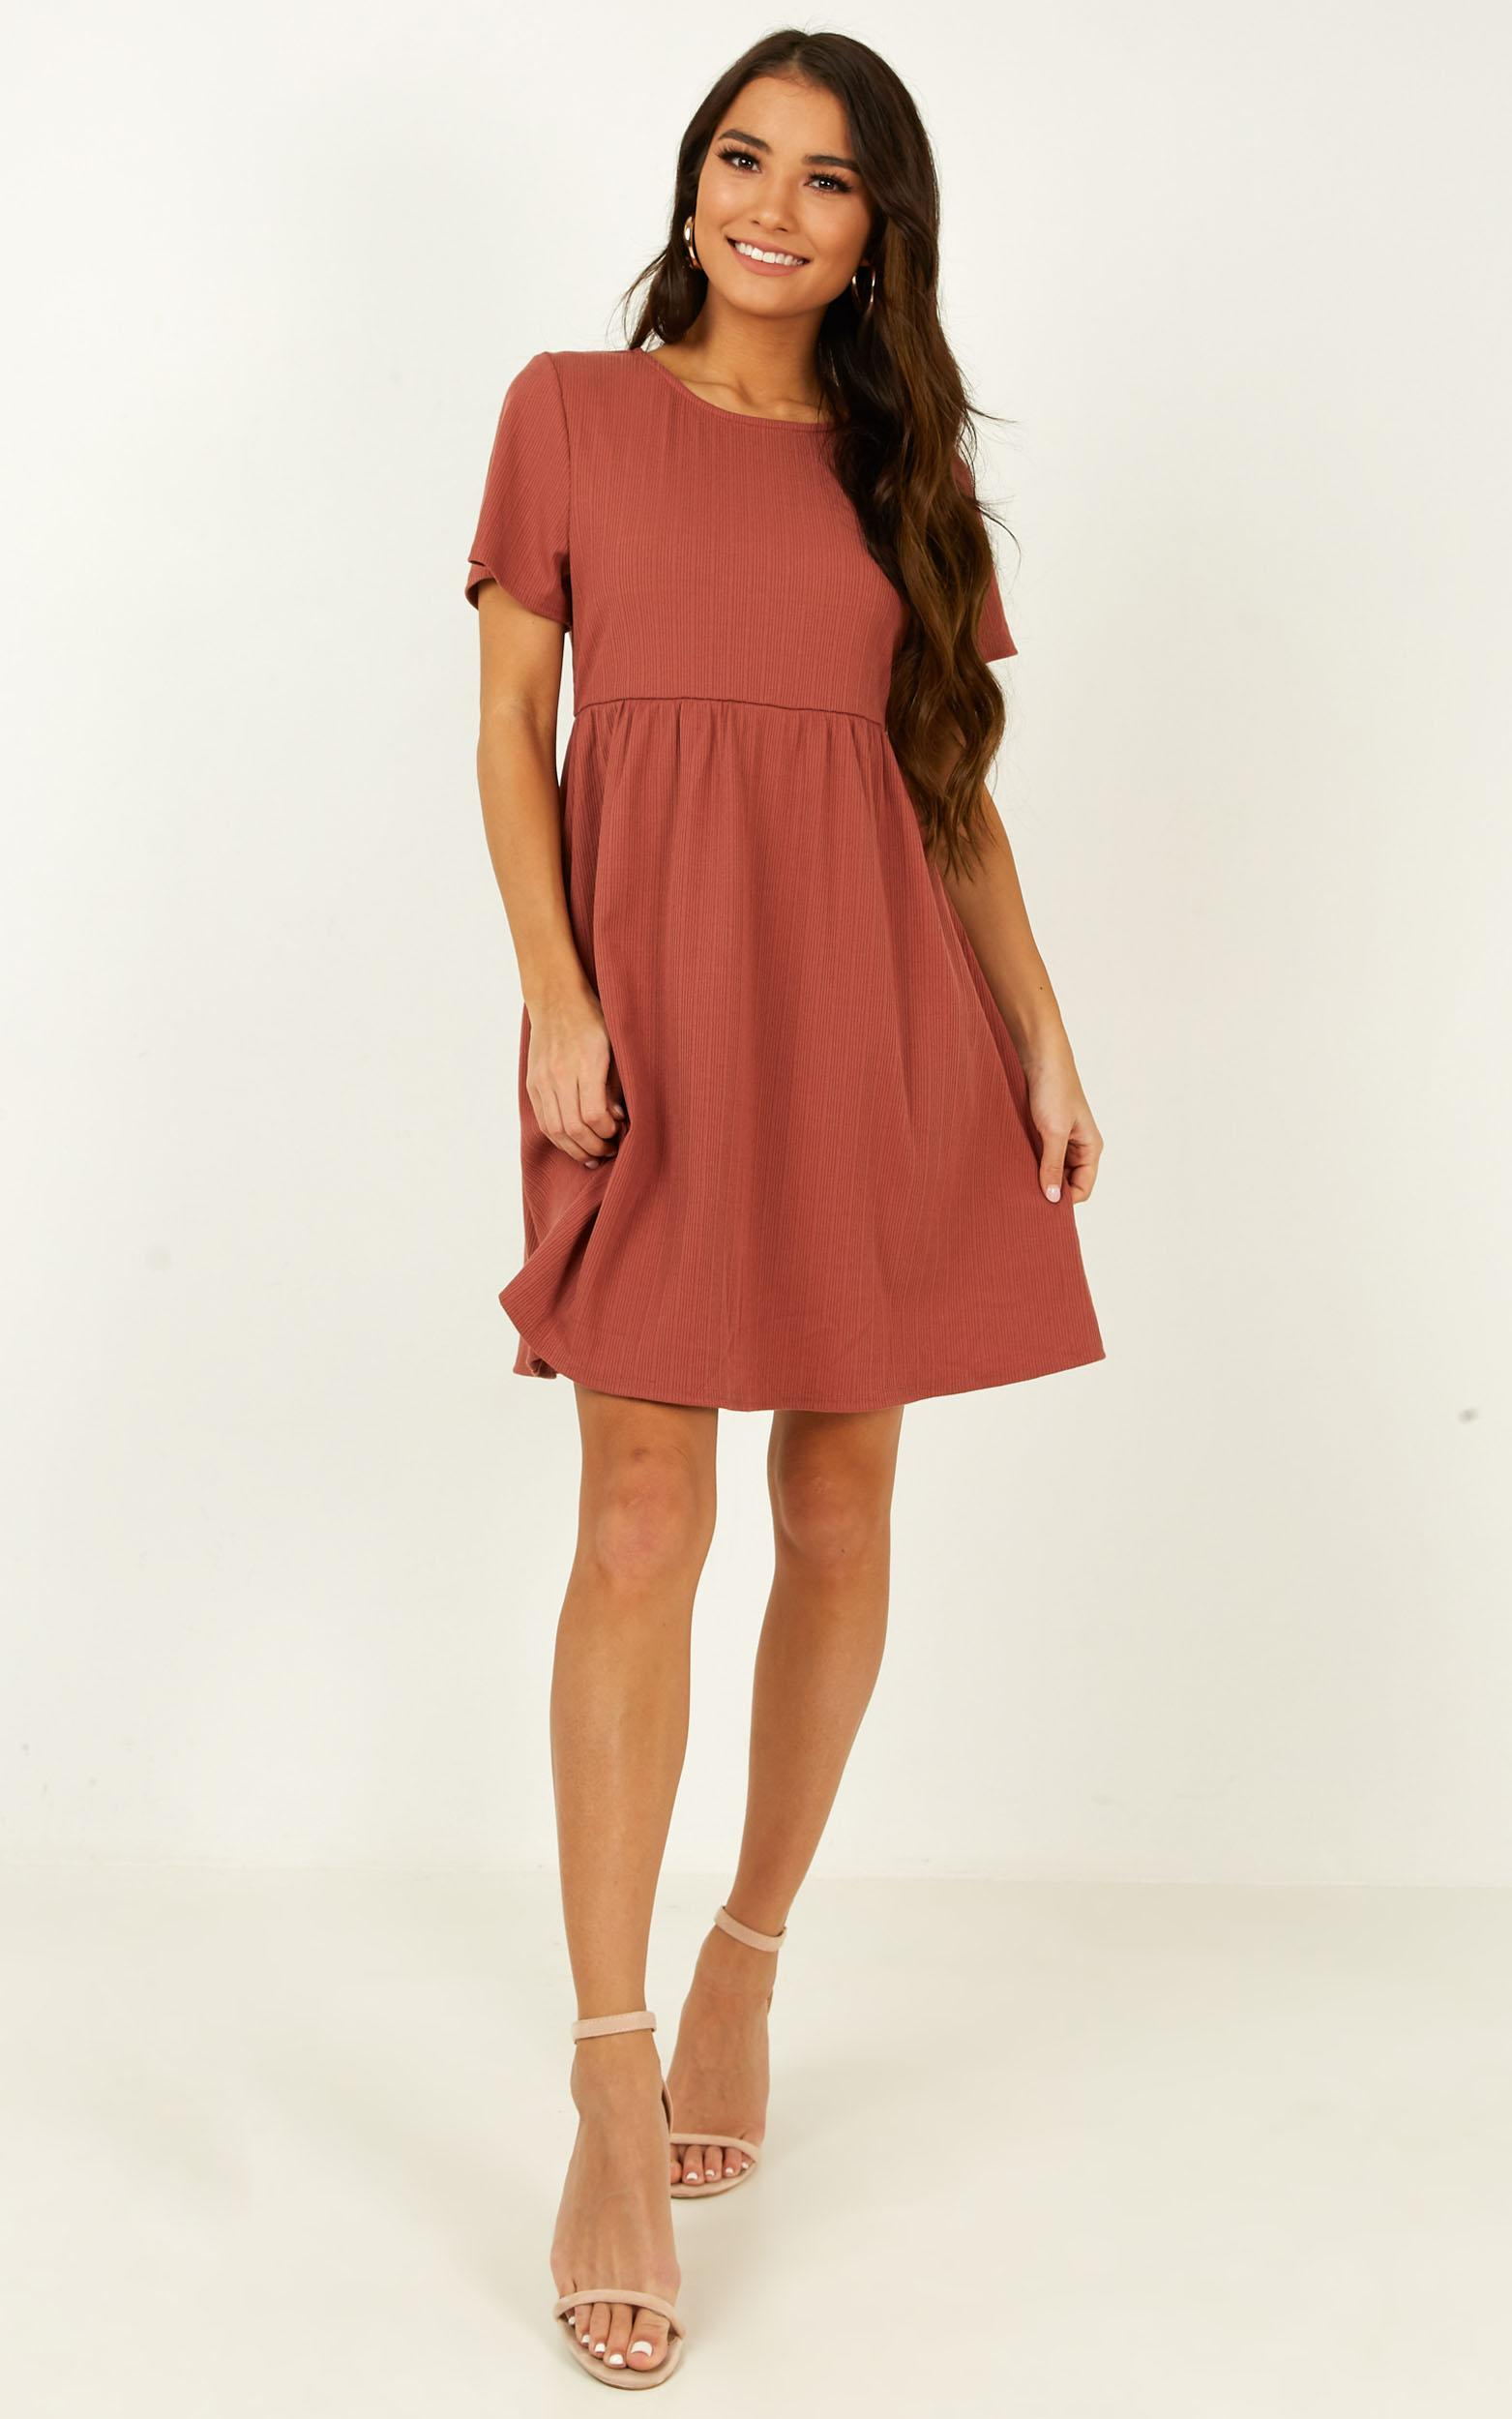 Just Chilling Dress in dusty rose - 20 (XXXXL), Pink, hi-res image number null